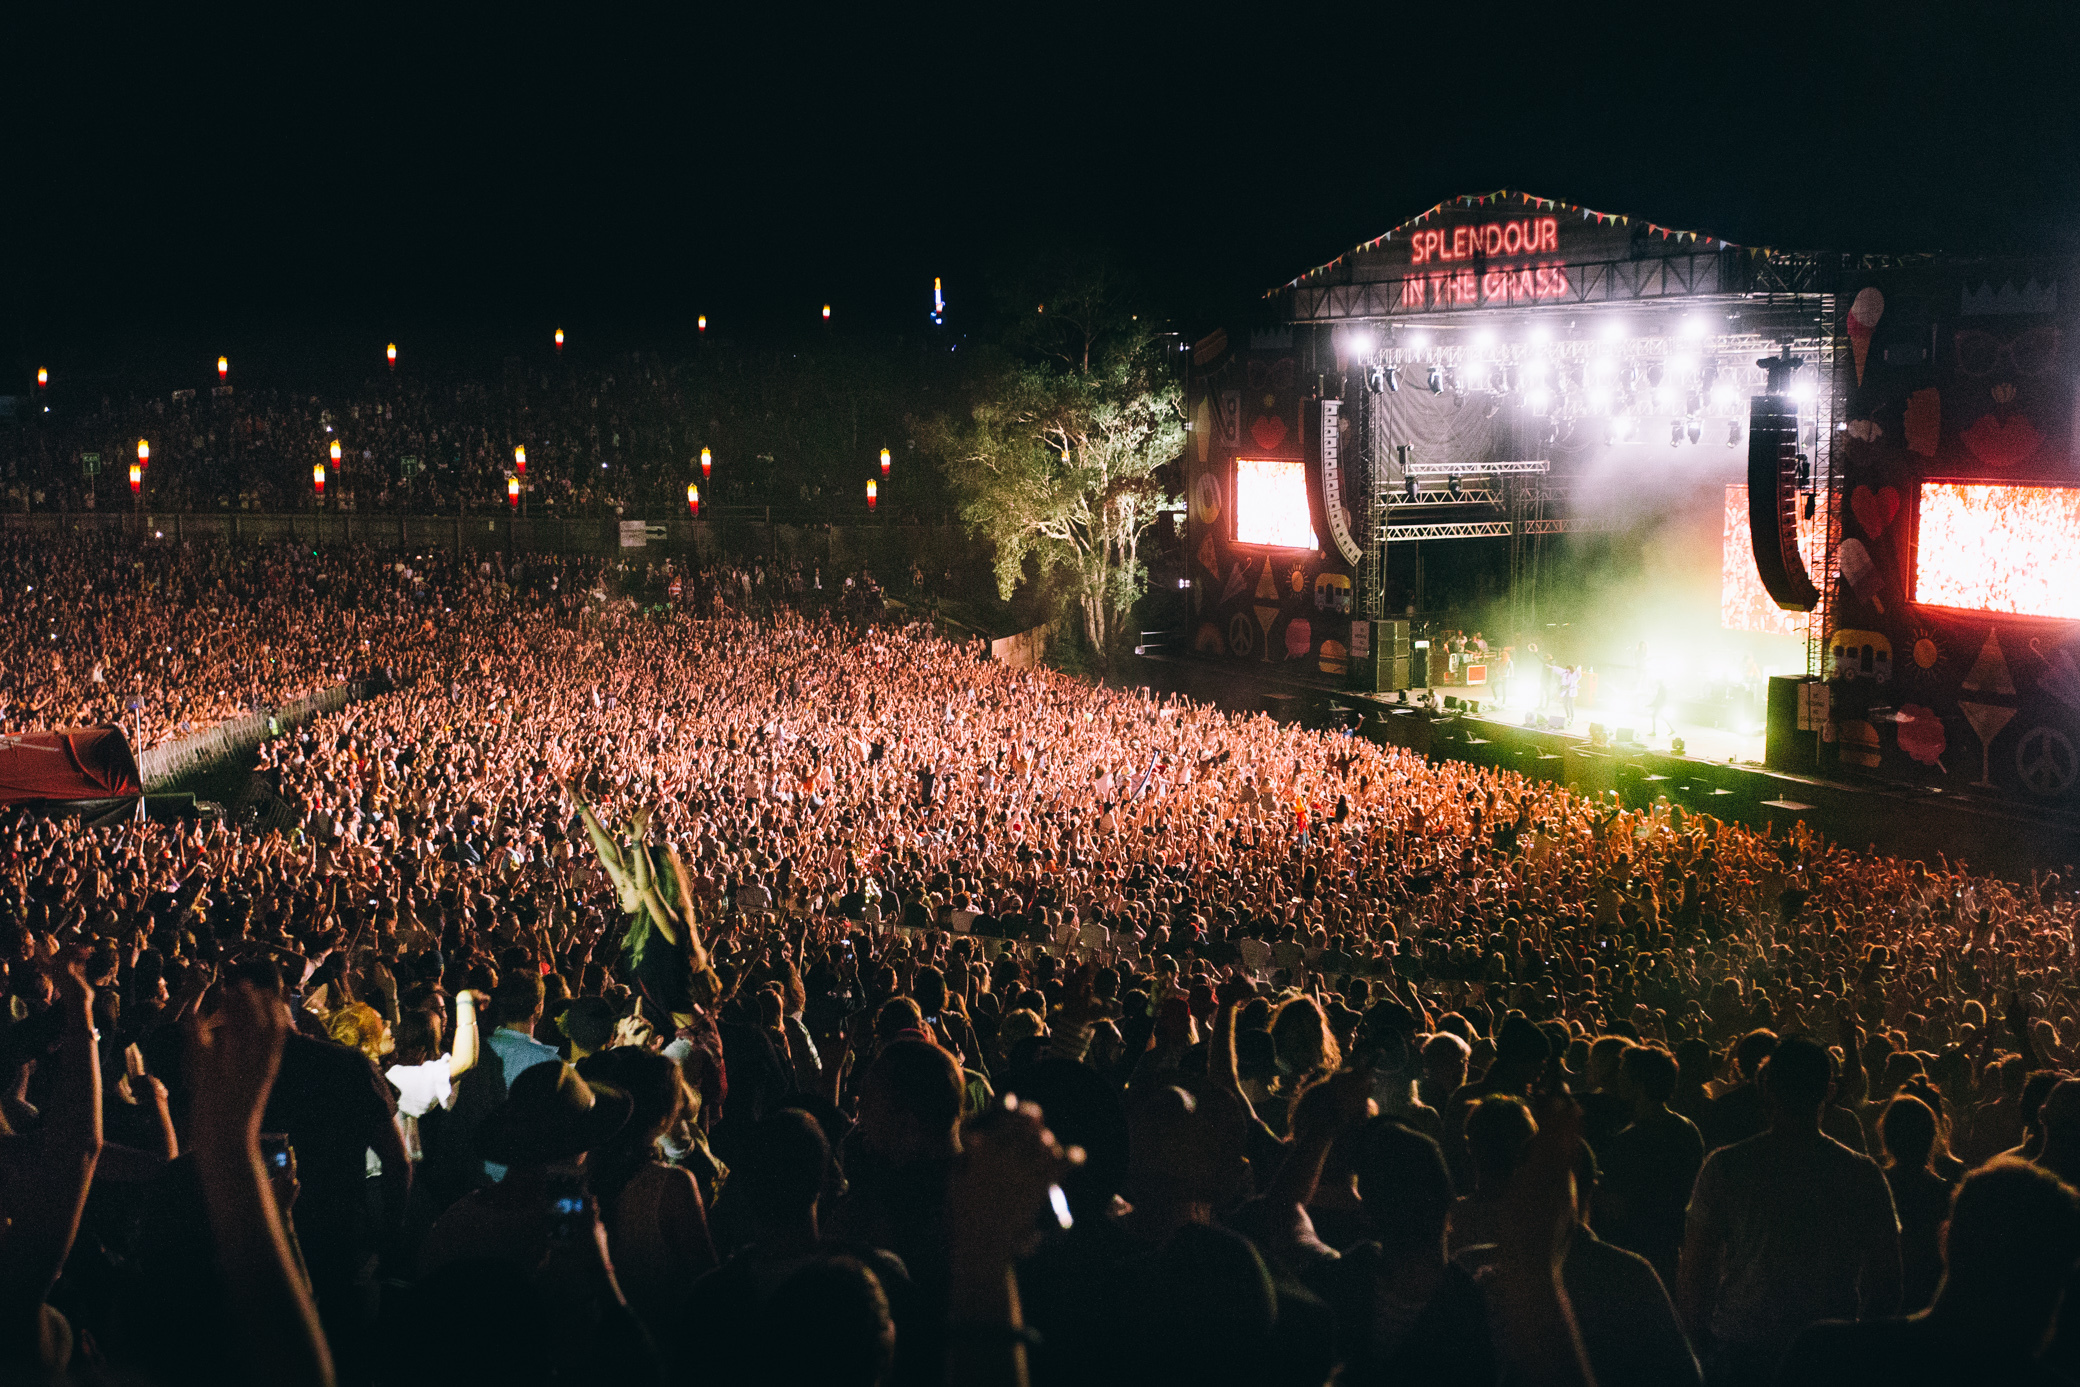 Splendour in the Grass still plagued with exit delays on day two